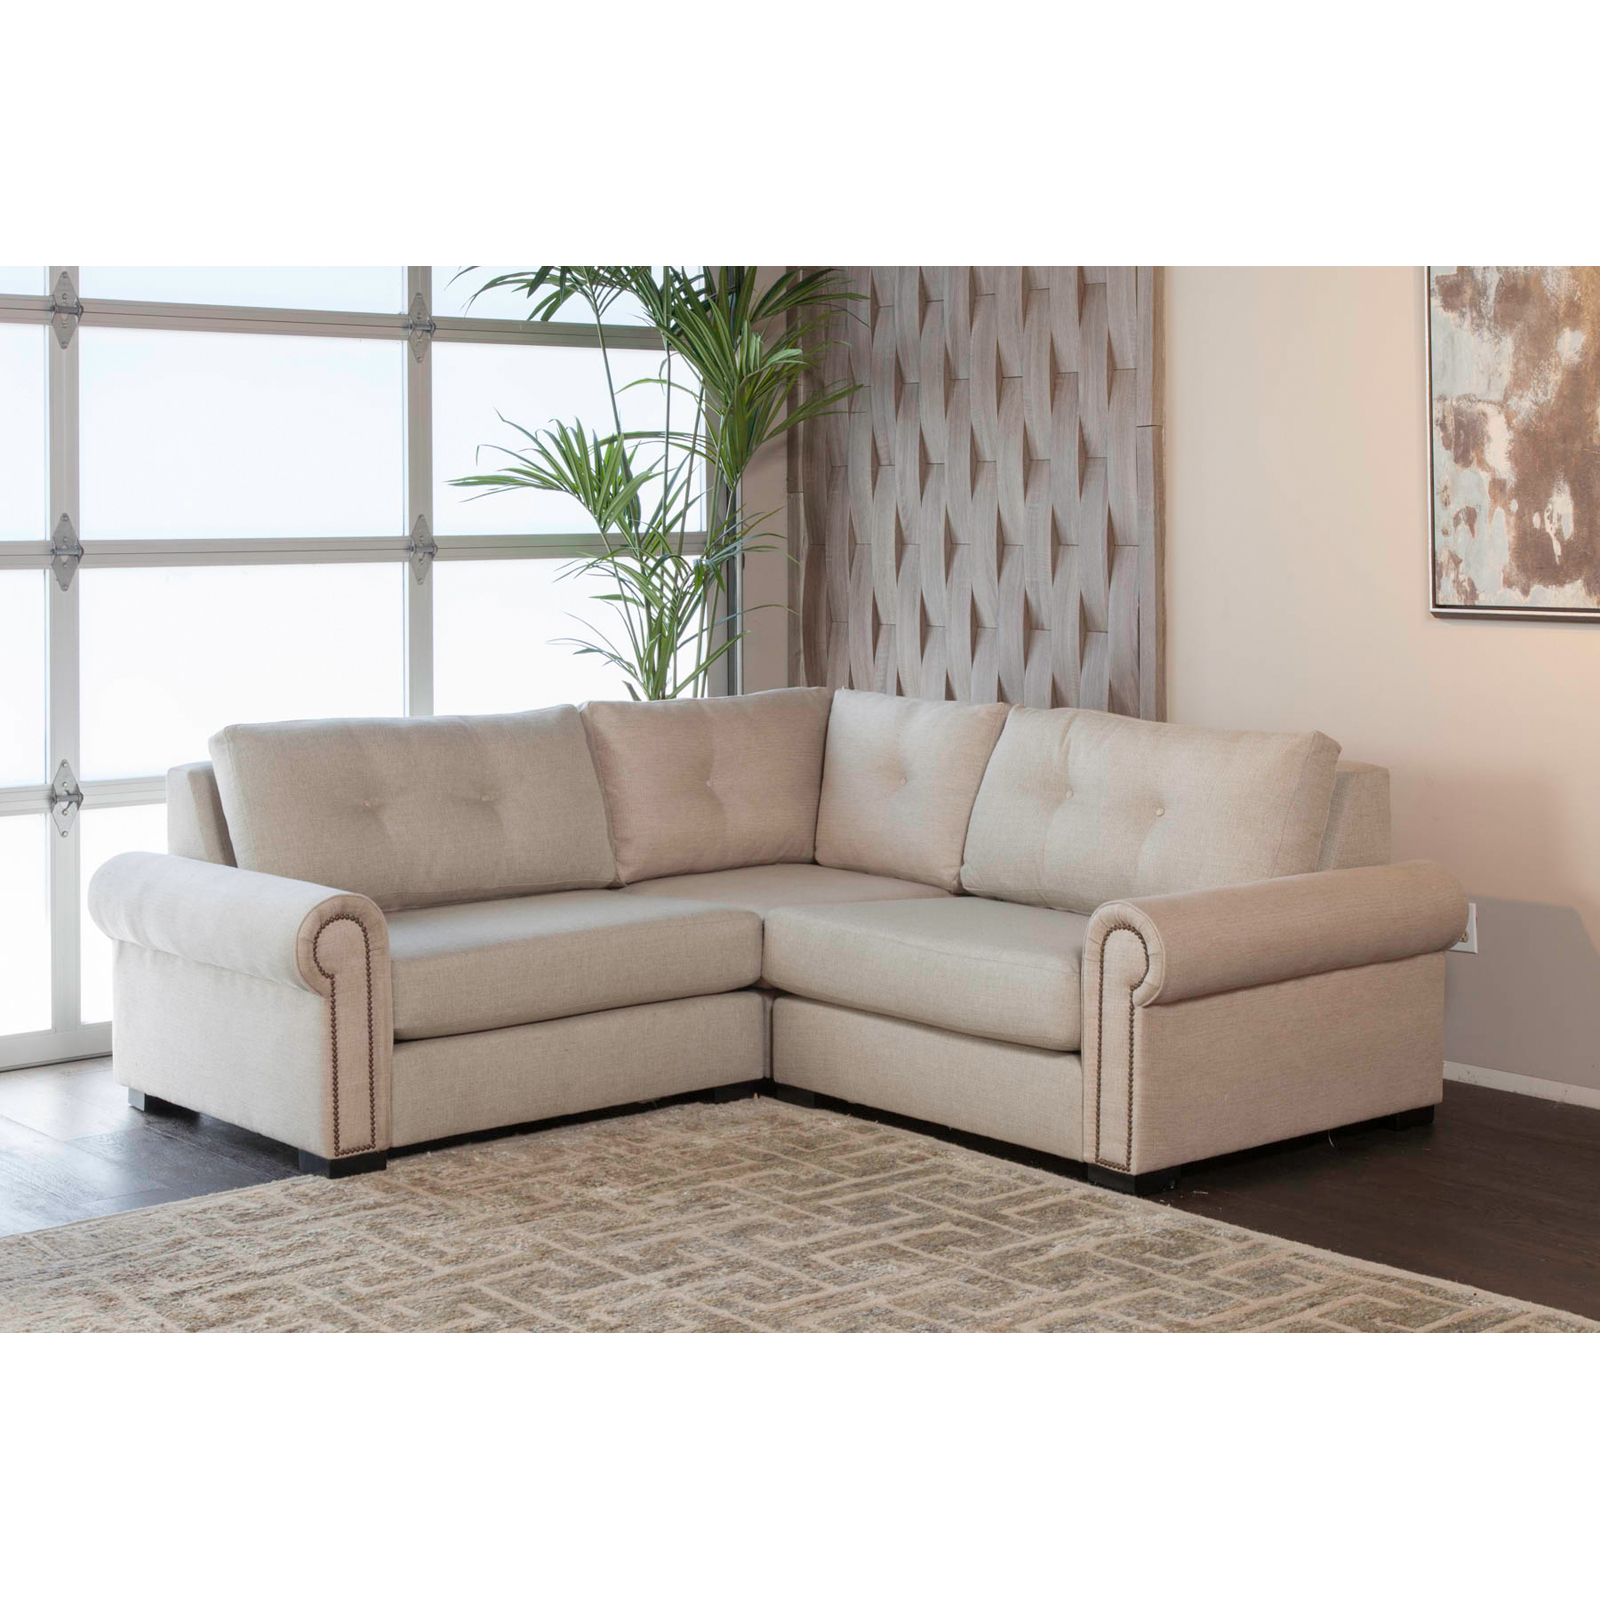 South Cone Chelsea Button Tufted Modular Right And Left Arms L Shape Mini  Sectional